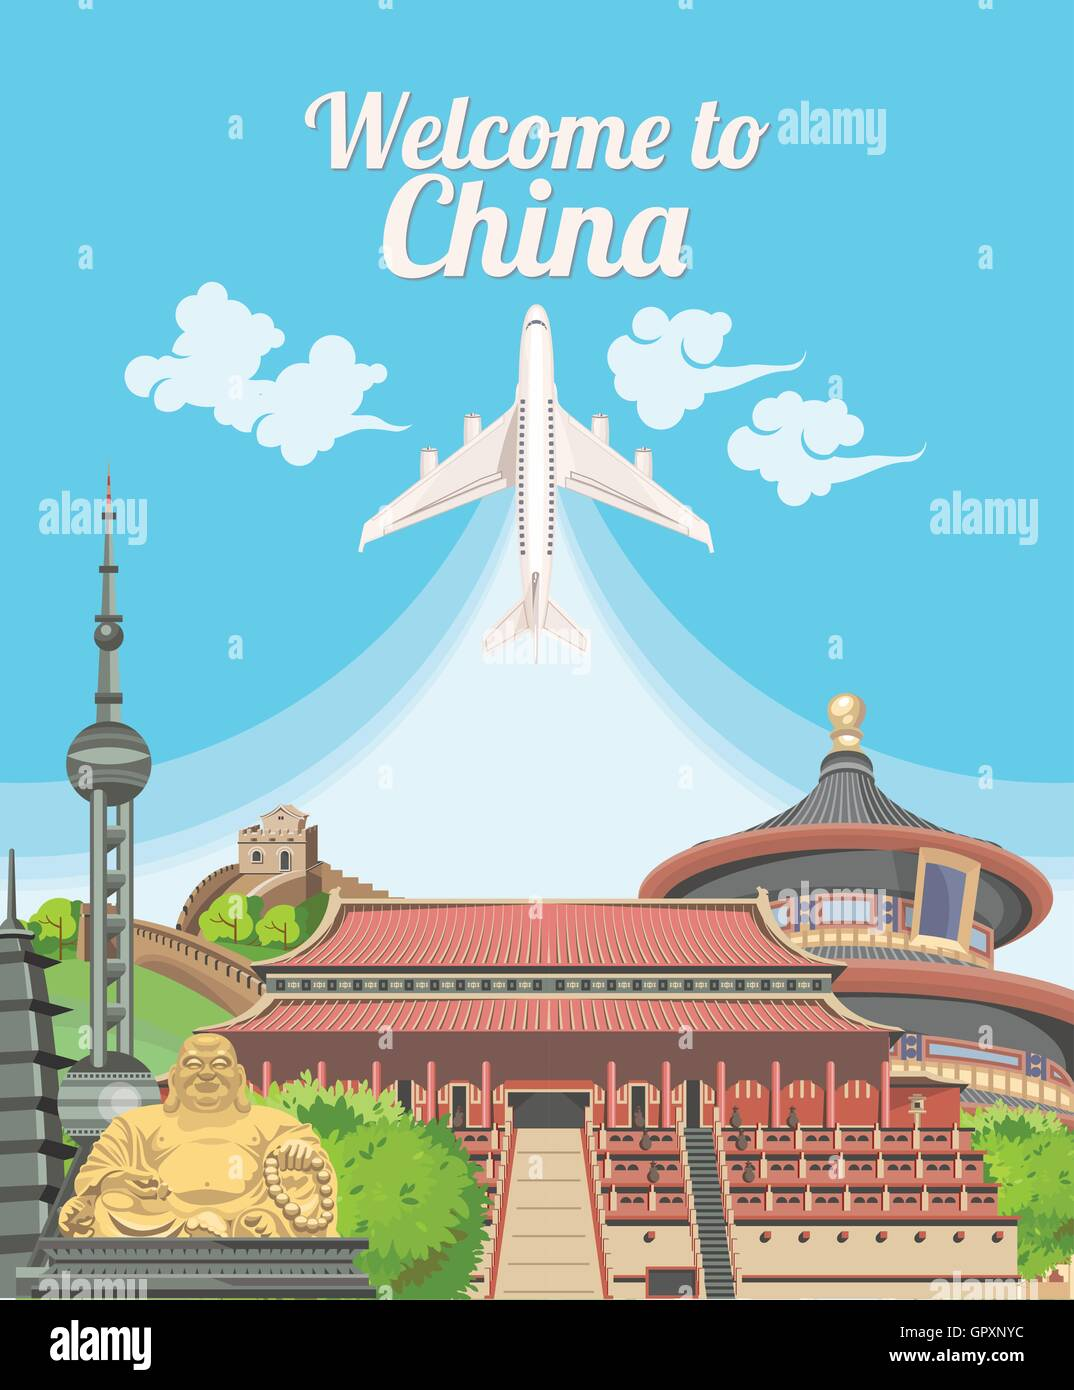 Welcome to China. Travel Chinese landmarks. Chinese vector icons. Vacations poster with Chinese ethnic elements - Stock Image